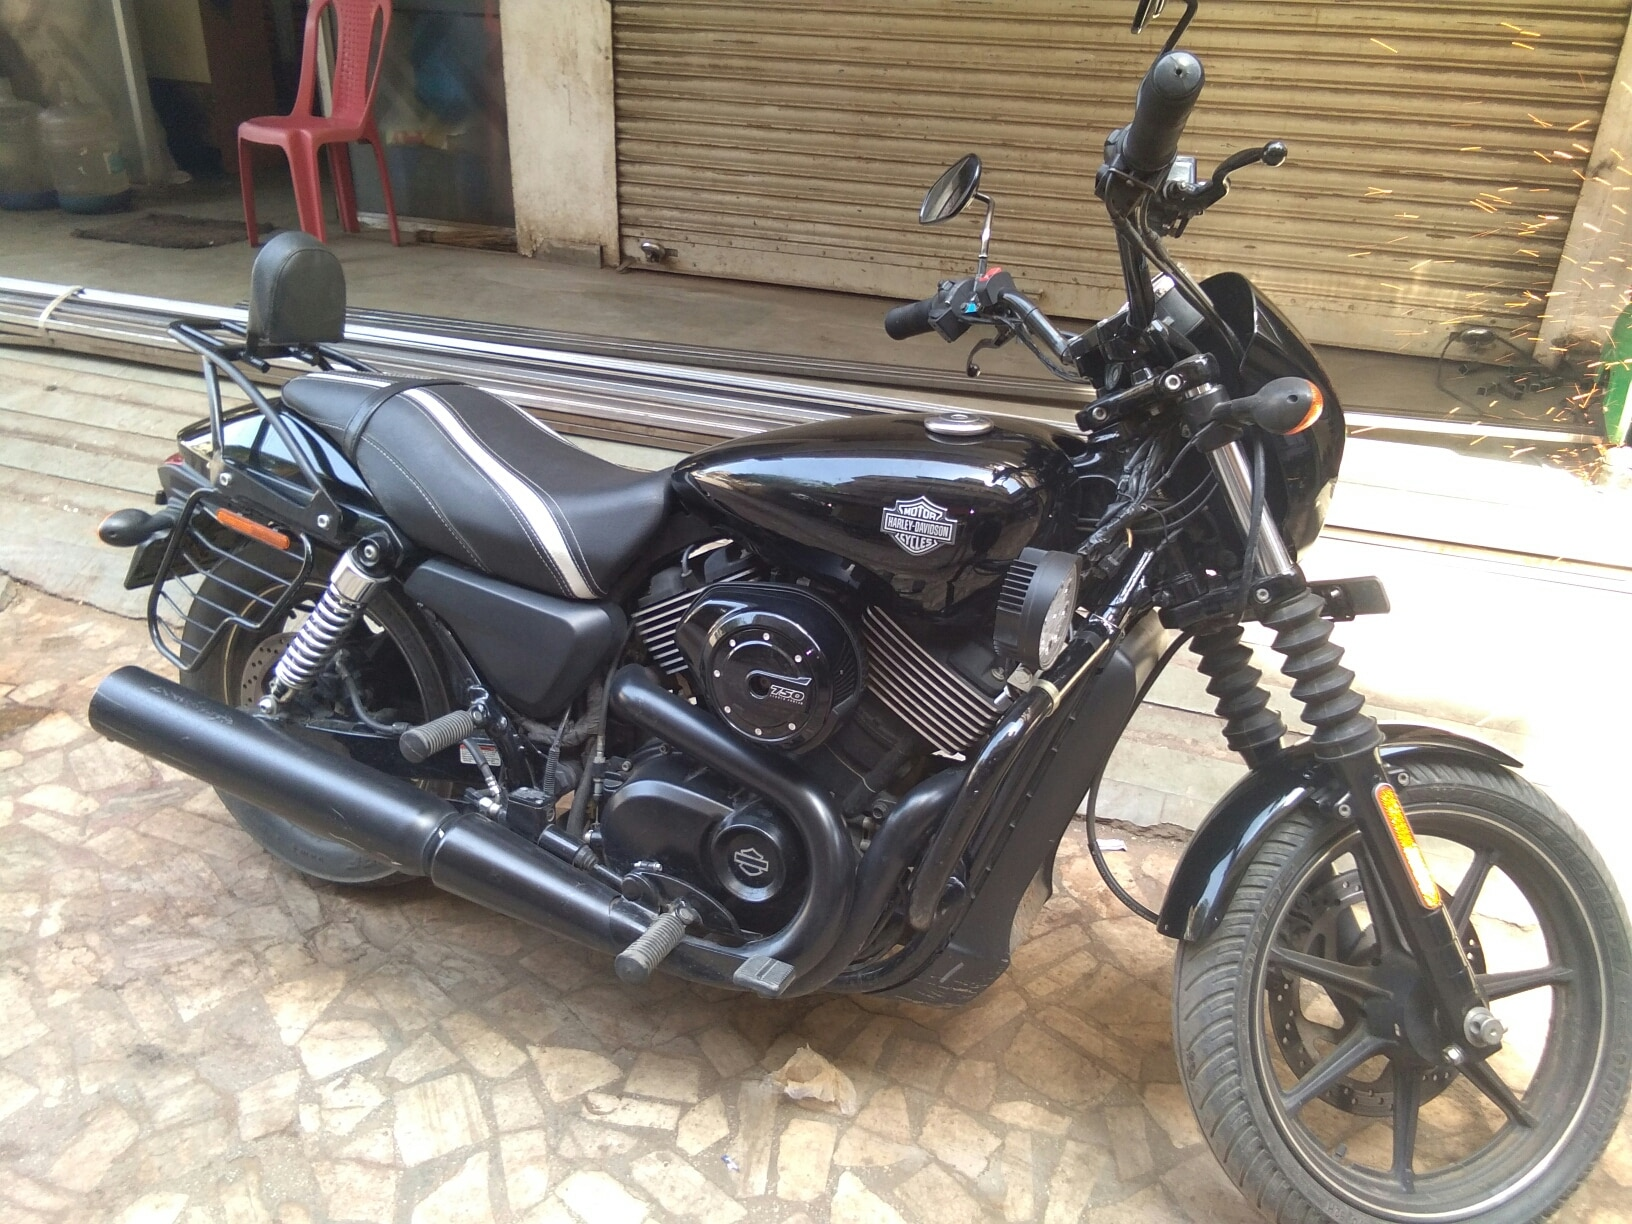 two wheeler on rent in ahmedabad saiveer travels hitesh 9825236735 harely devedson 750street